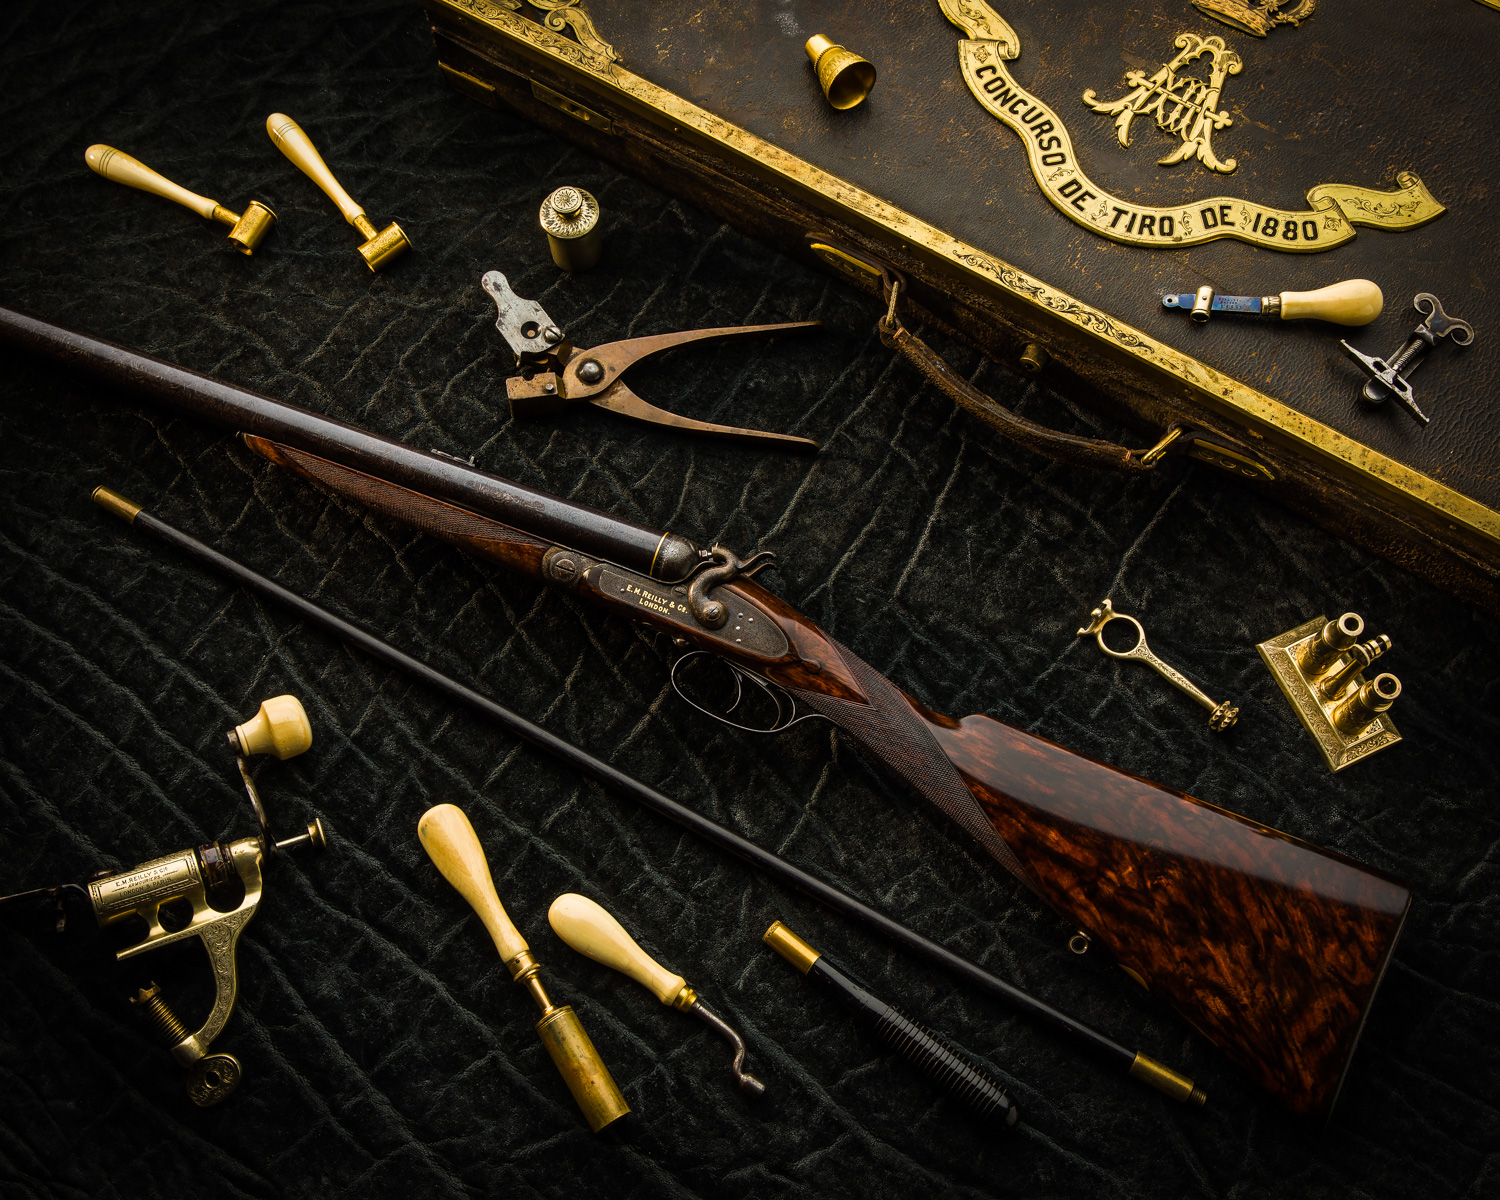 E.M.Reilly & Co. Royal Presentation Combination Gun